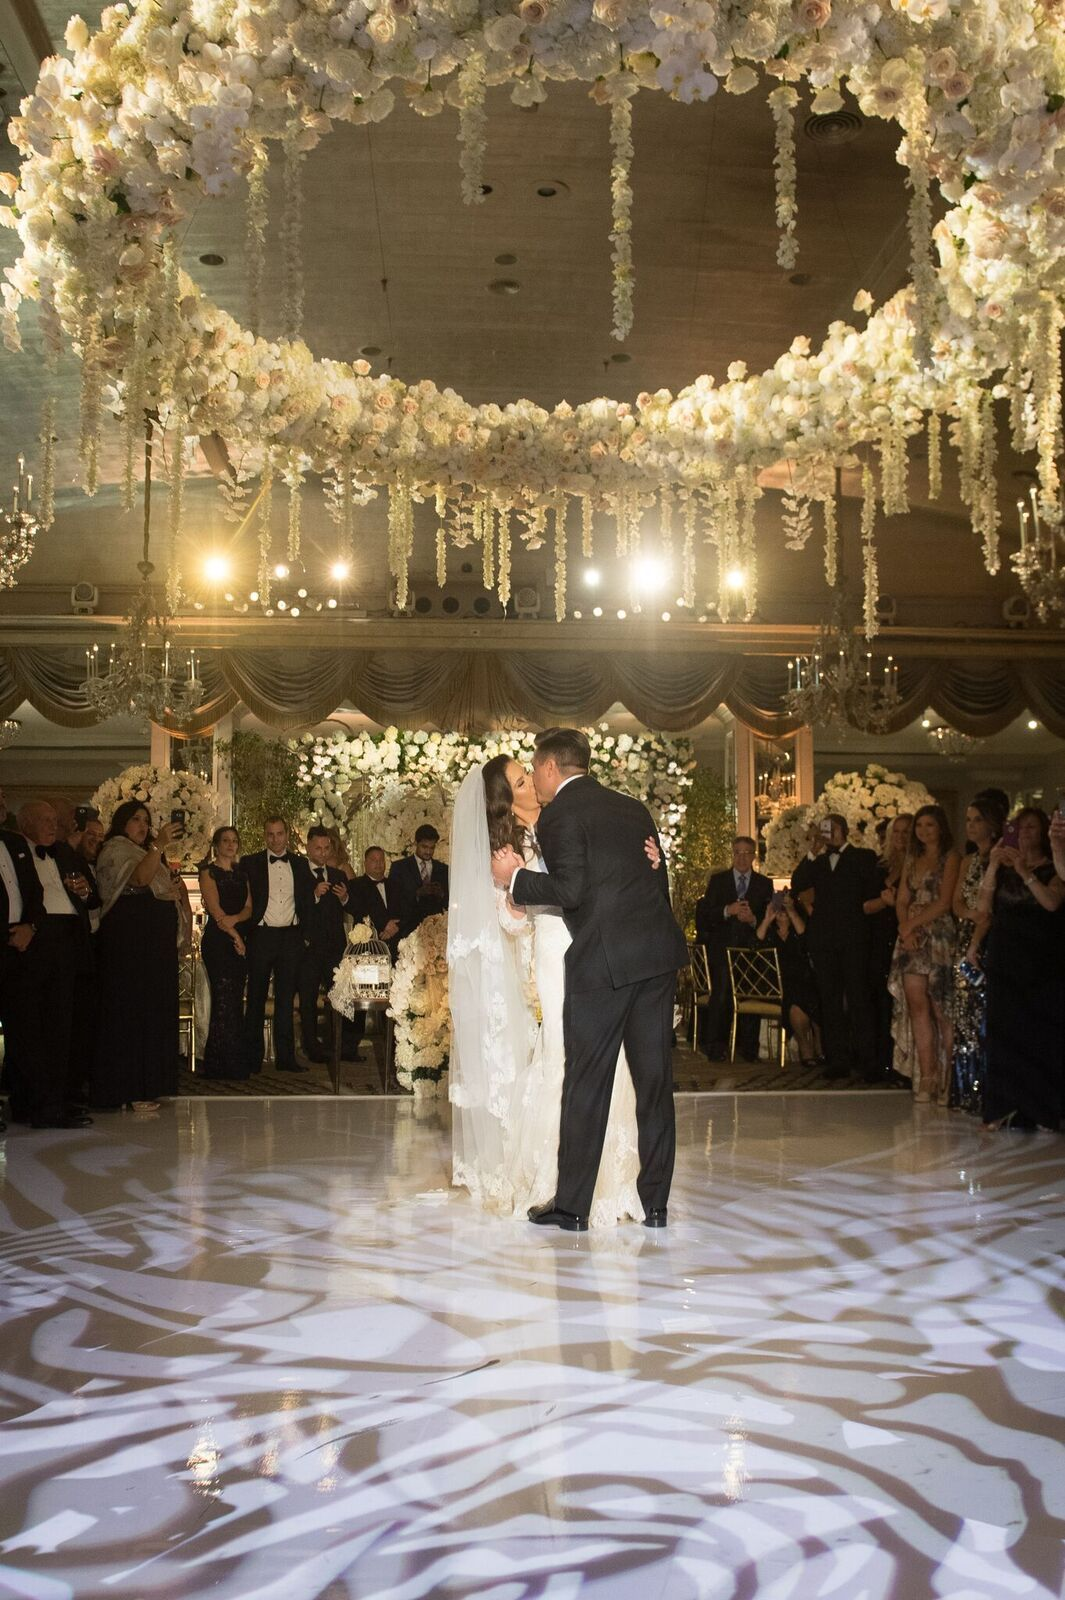 Glamorous Ballroom New York Wedding at the Pierre Hotel #weddingreception